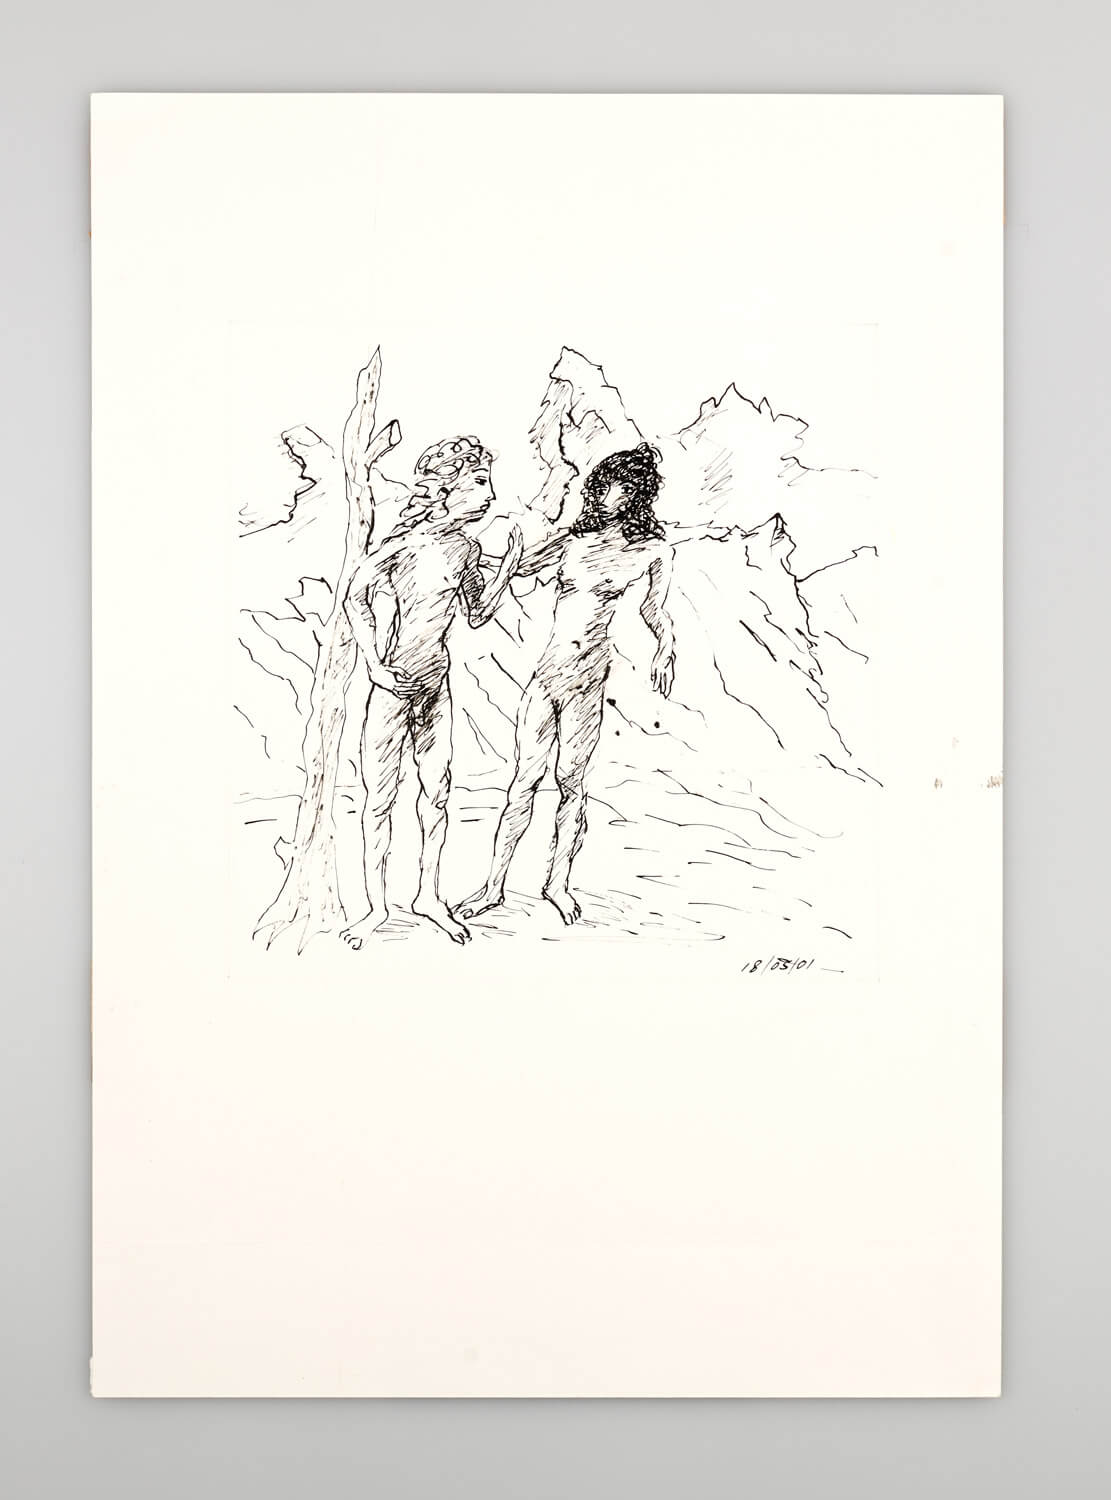 JB102 - Nude Man and Woman in a landscape - 2001 - 50 x 35 cm - Indian ink on paper